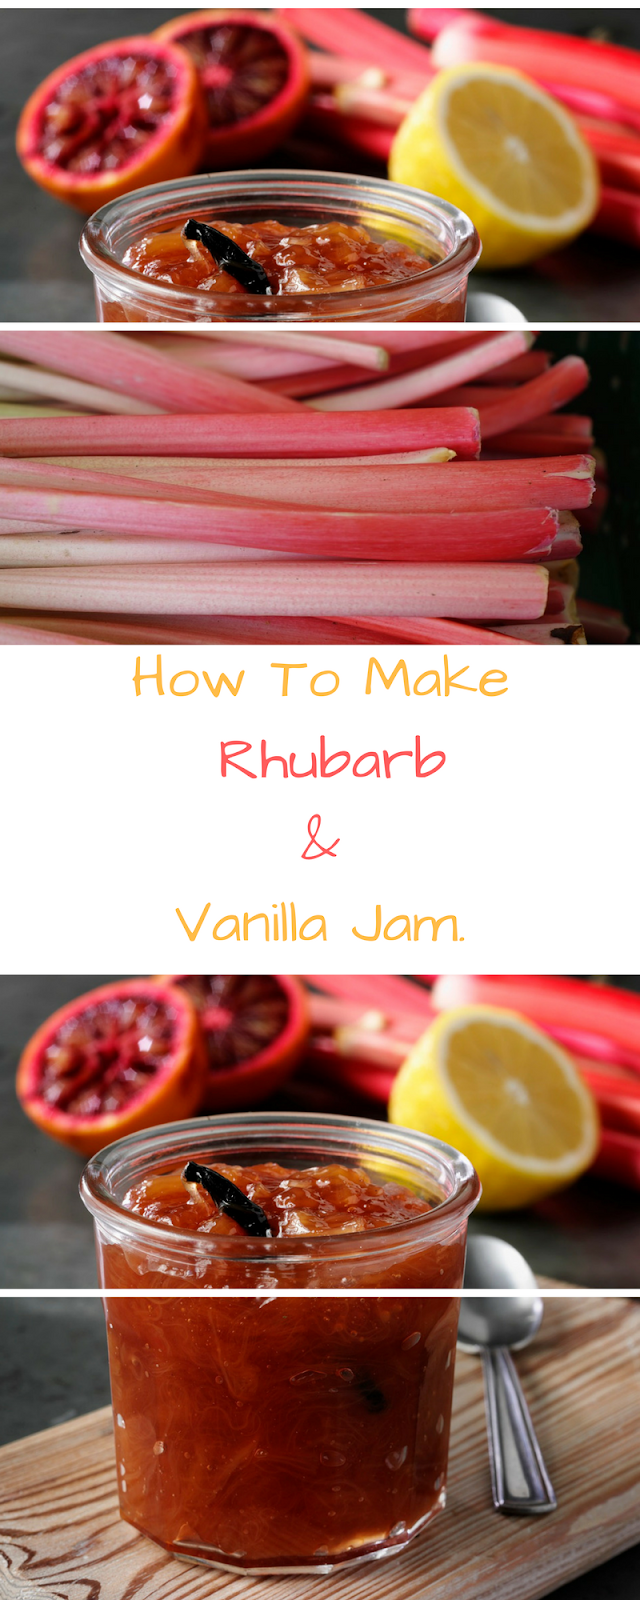 How To Make Rhubarb And Vanilla Jam